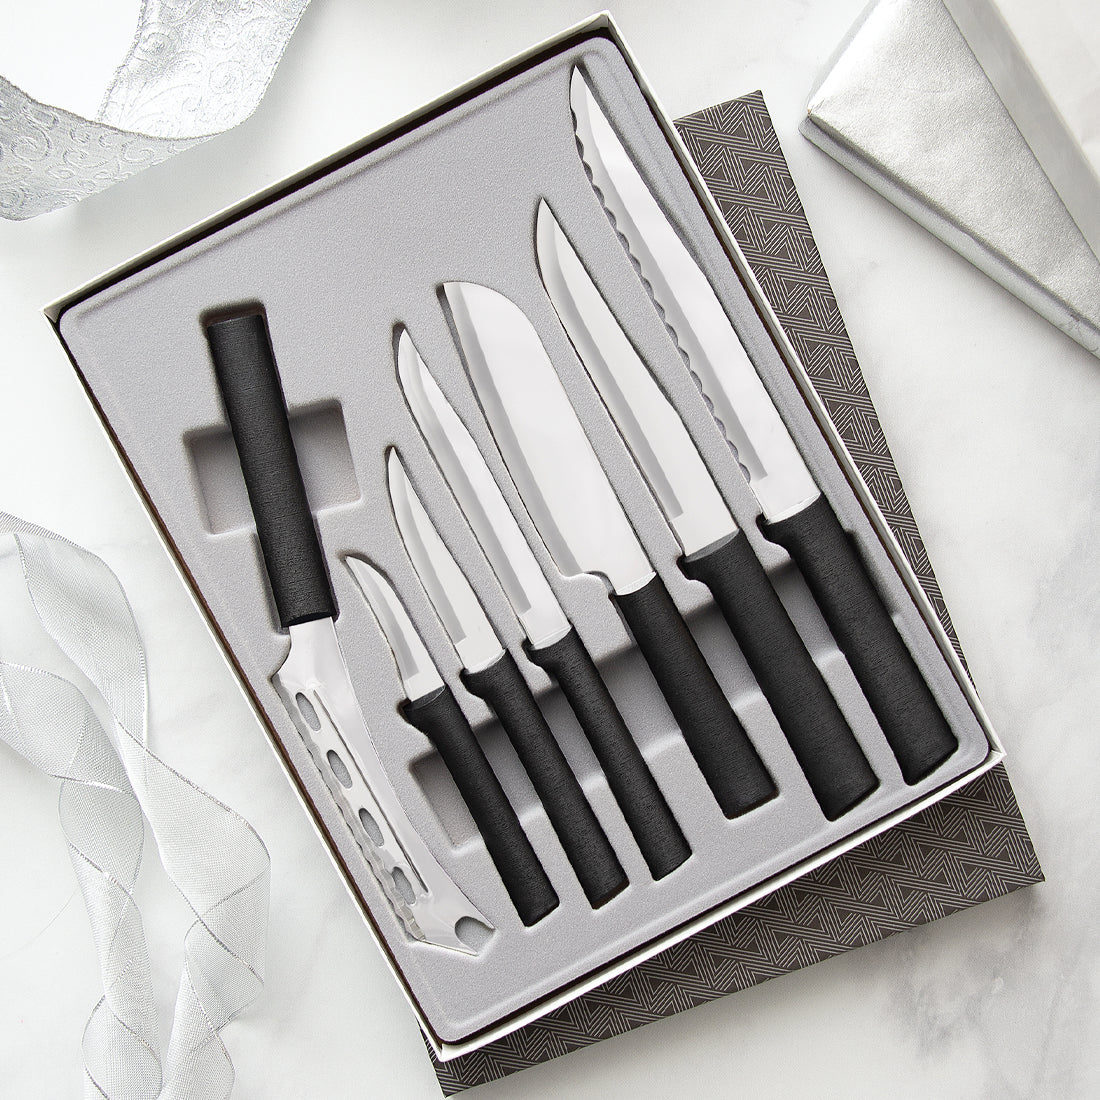 Rada Cutlery The Starter Gift Set Part 2 with black handles.